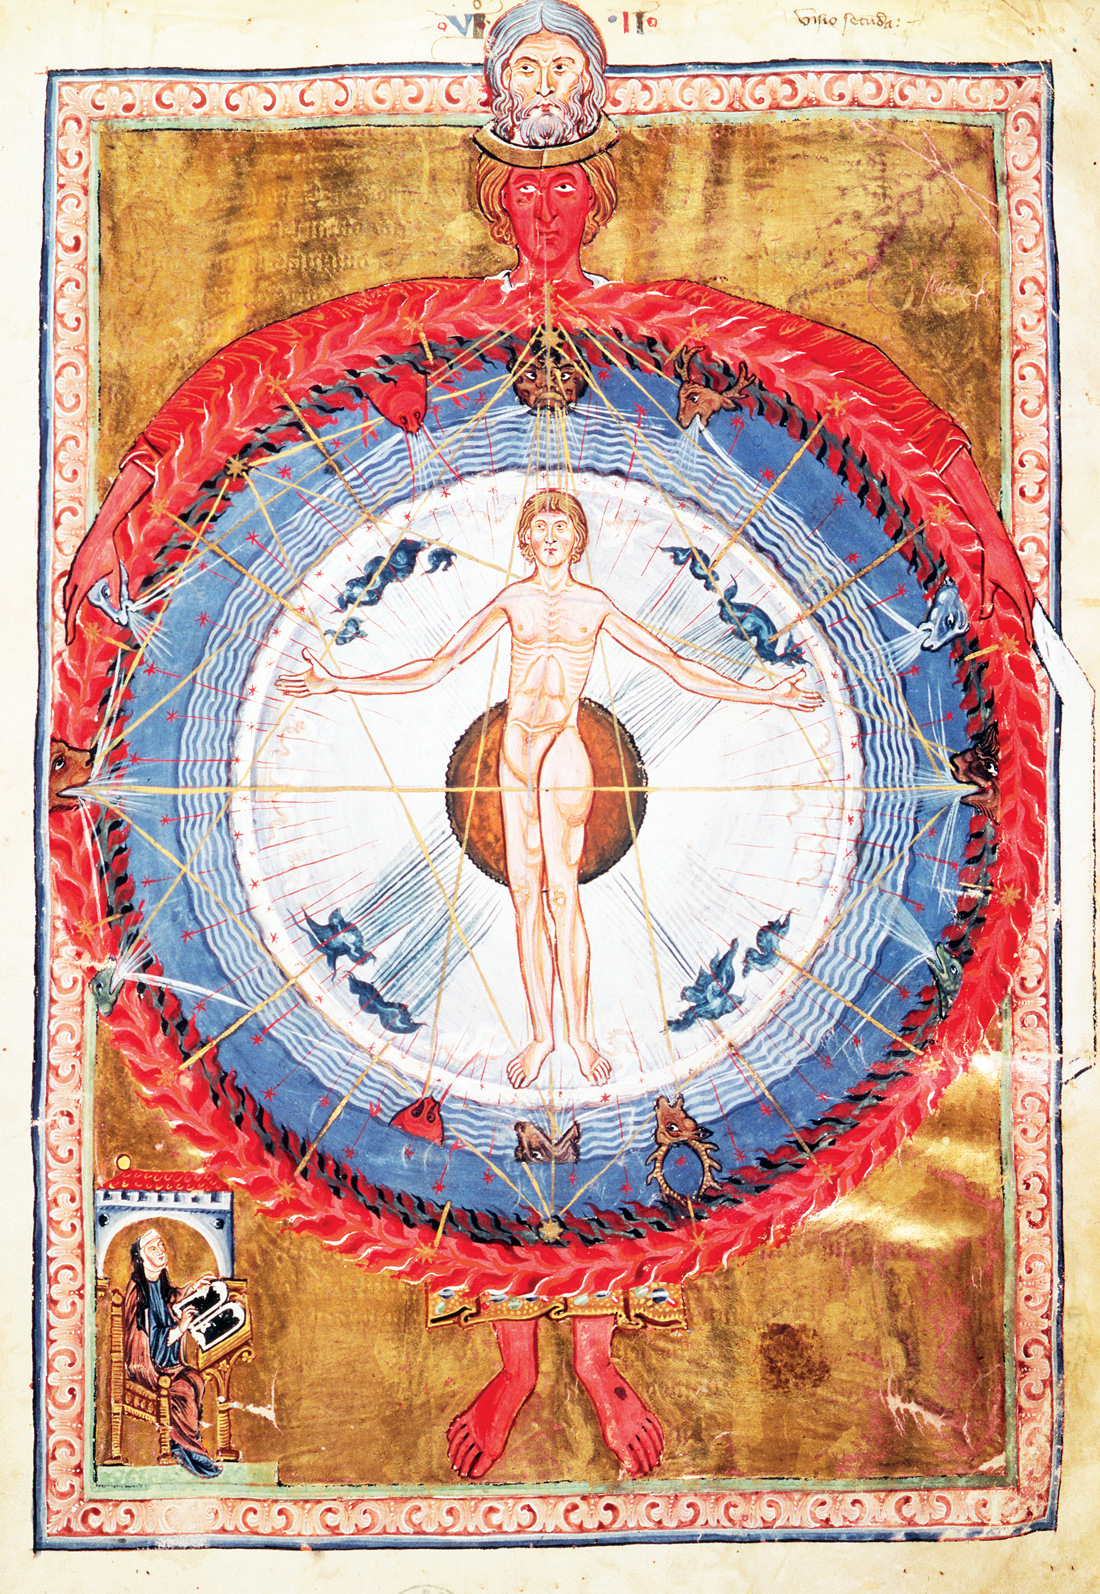 Man as the center of the universe, illustration from De Operatione Dei, by Saint Hildegard of Bingen, c. 1200. Biblioteca Statale, Lucca, Italy.